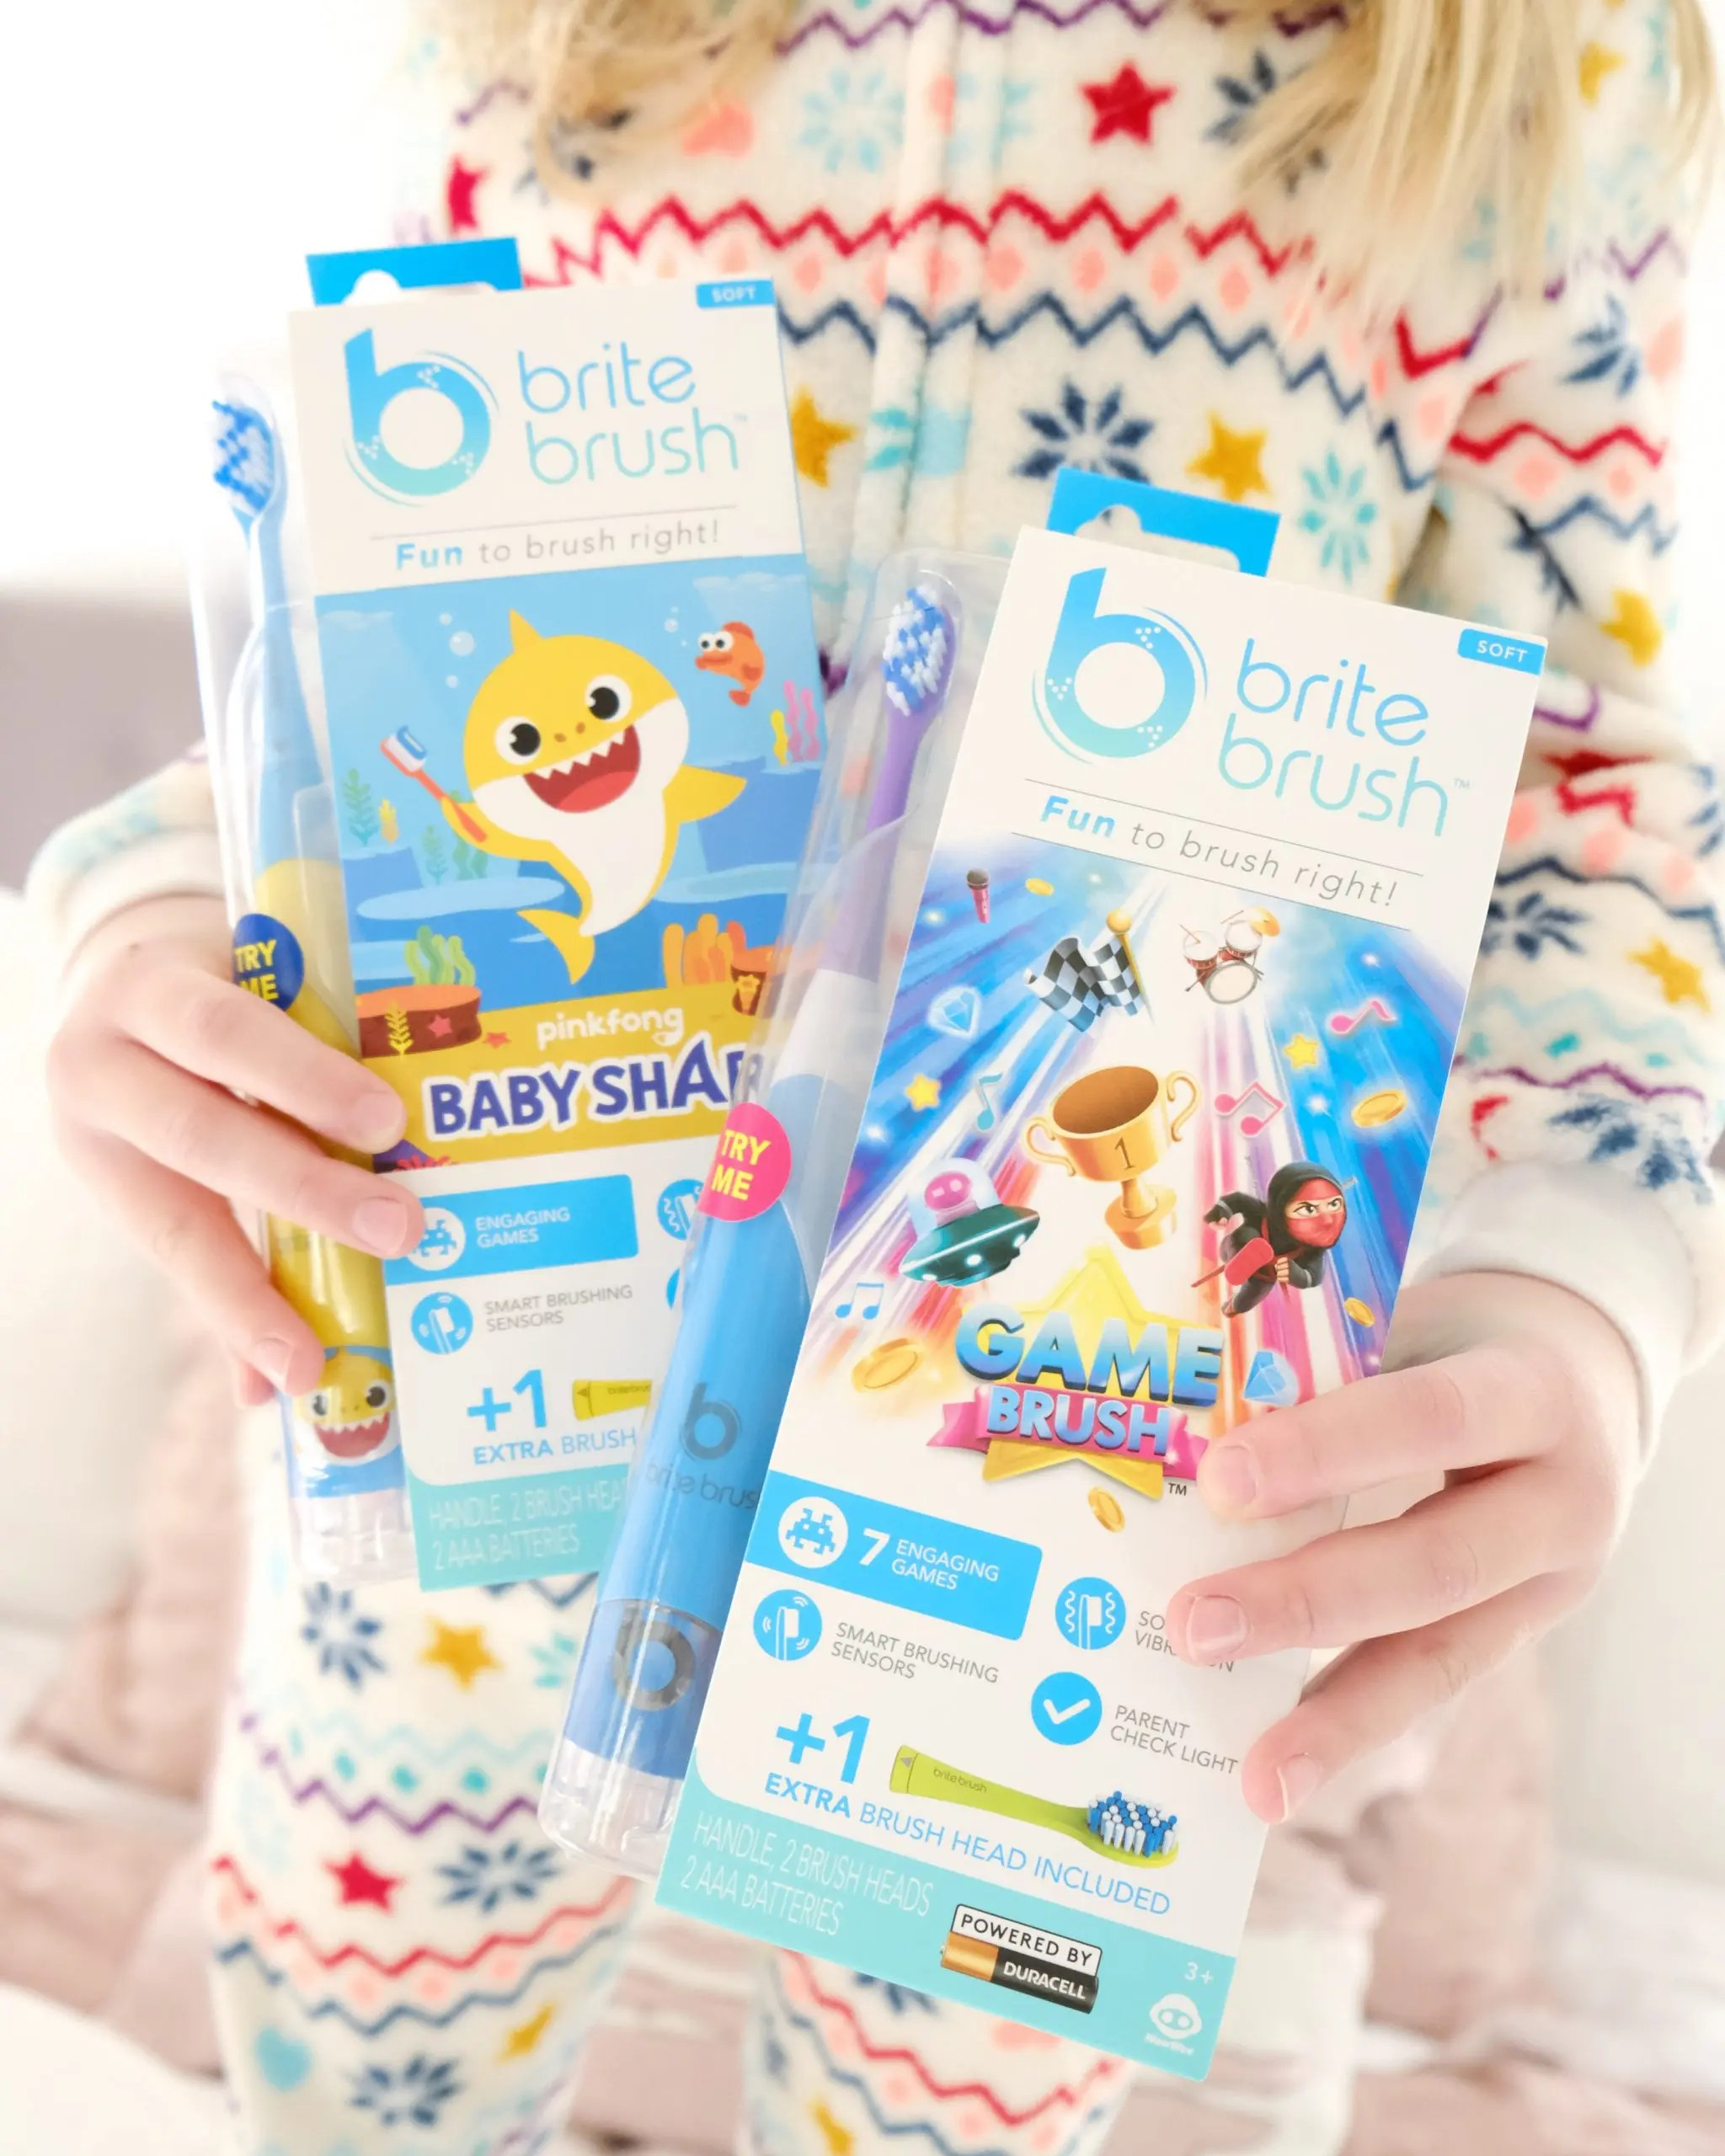 BriteBrush Kids Interactive Toothbrush